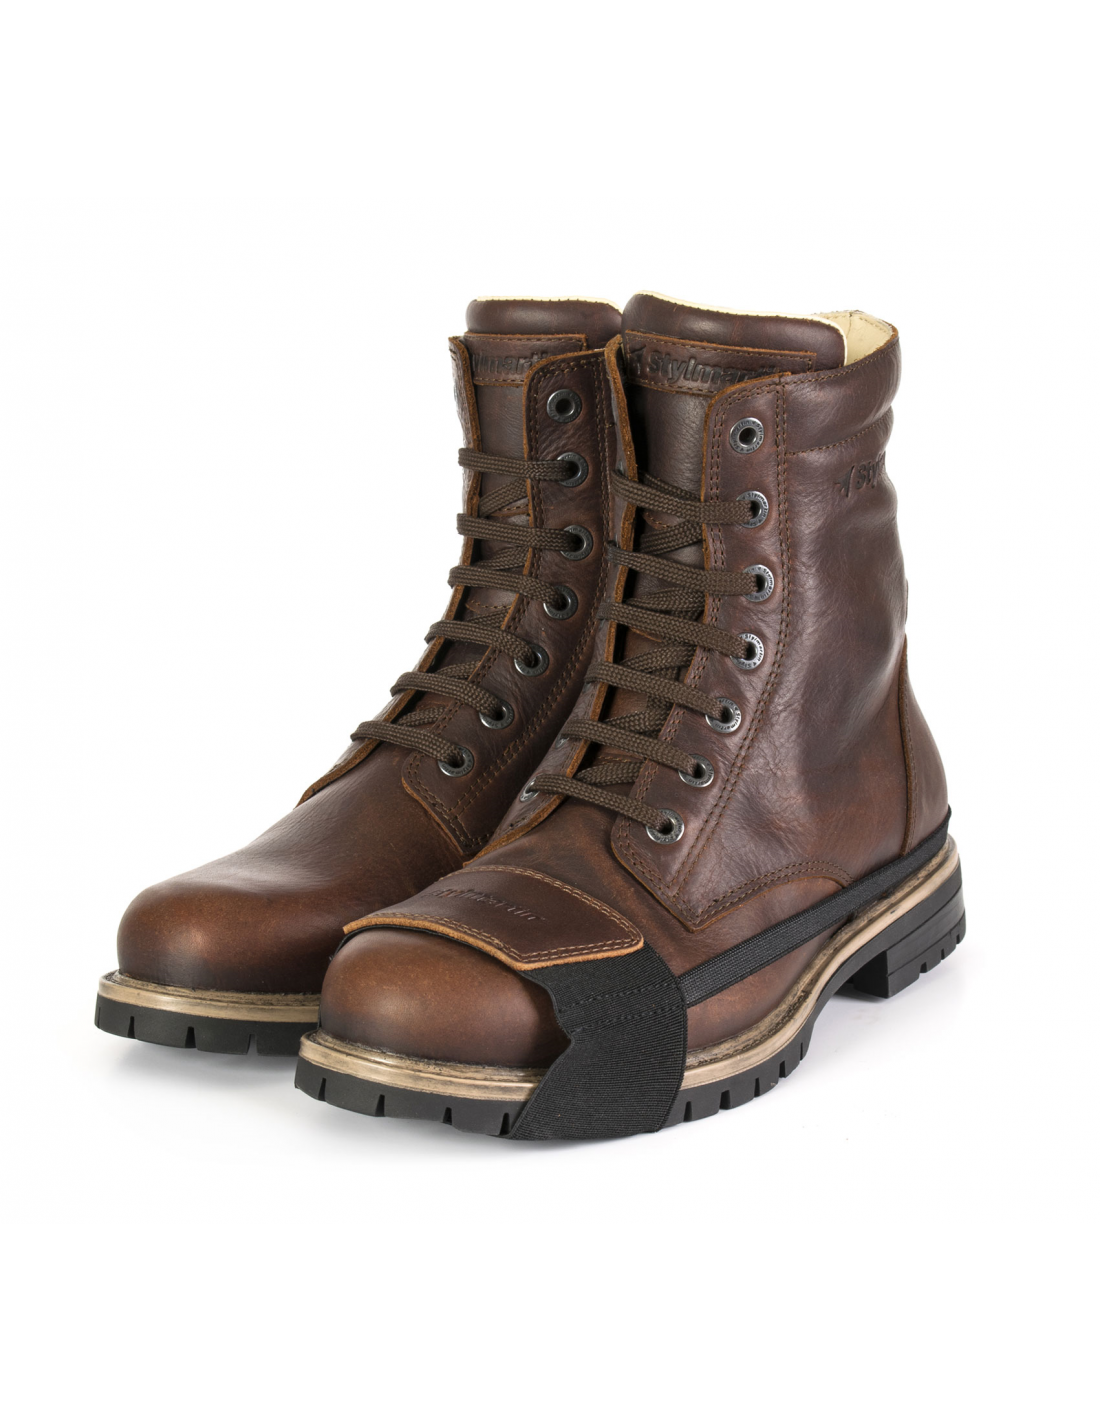 stylmartin boots - ace brown - cafe racer boots made in italy